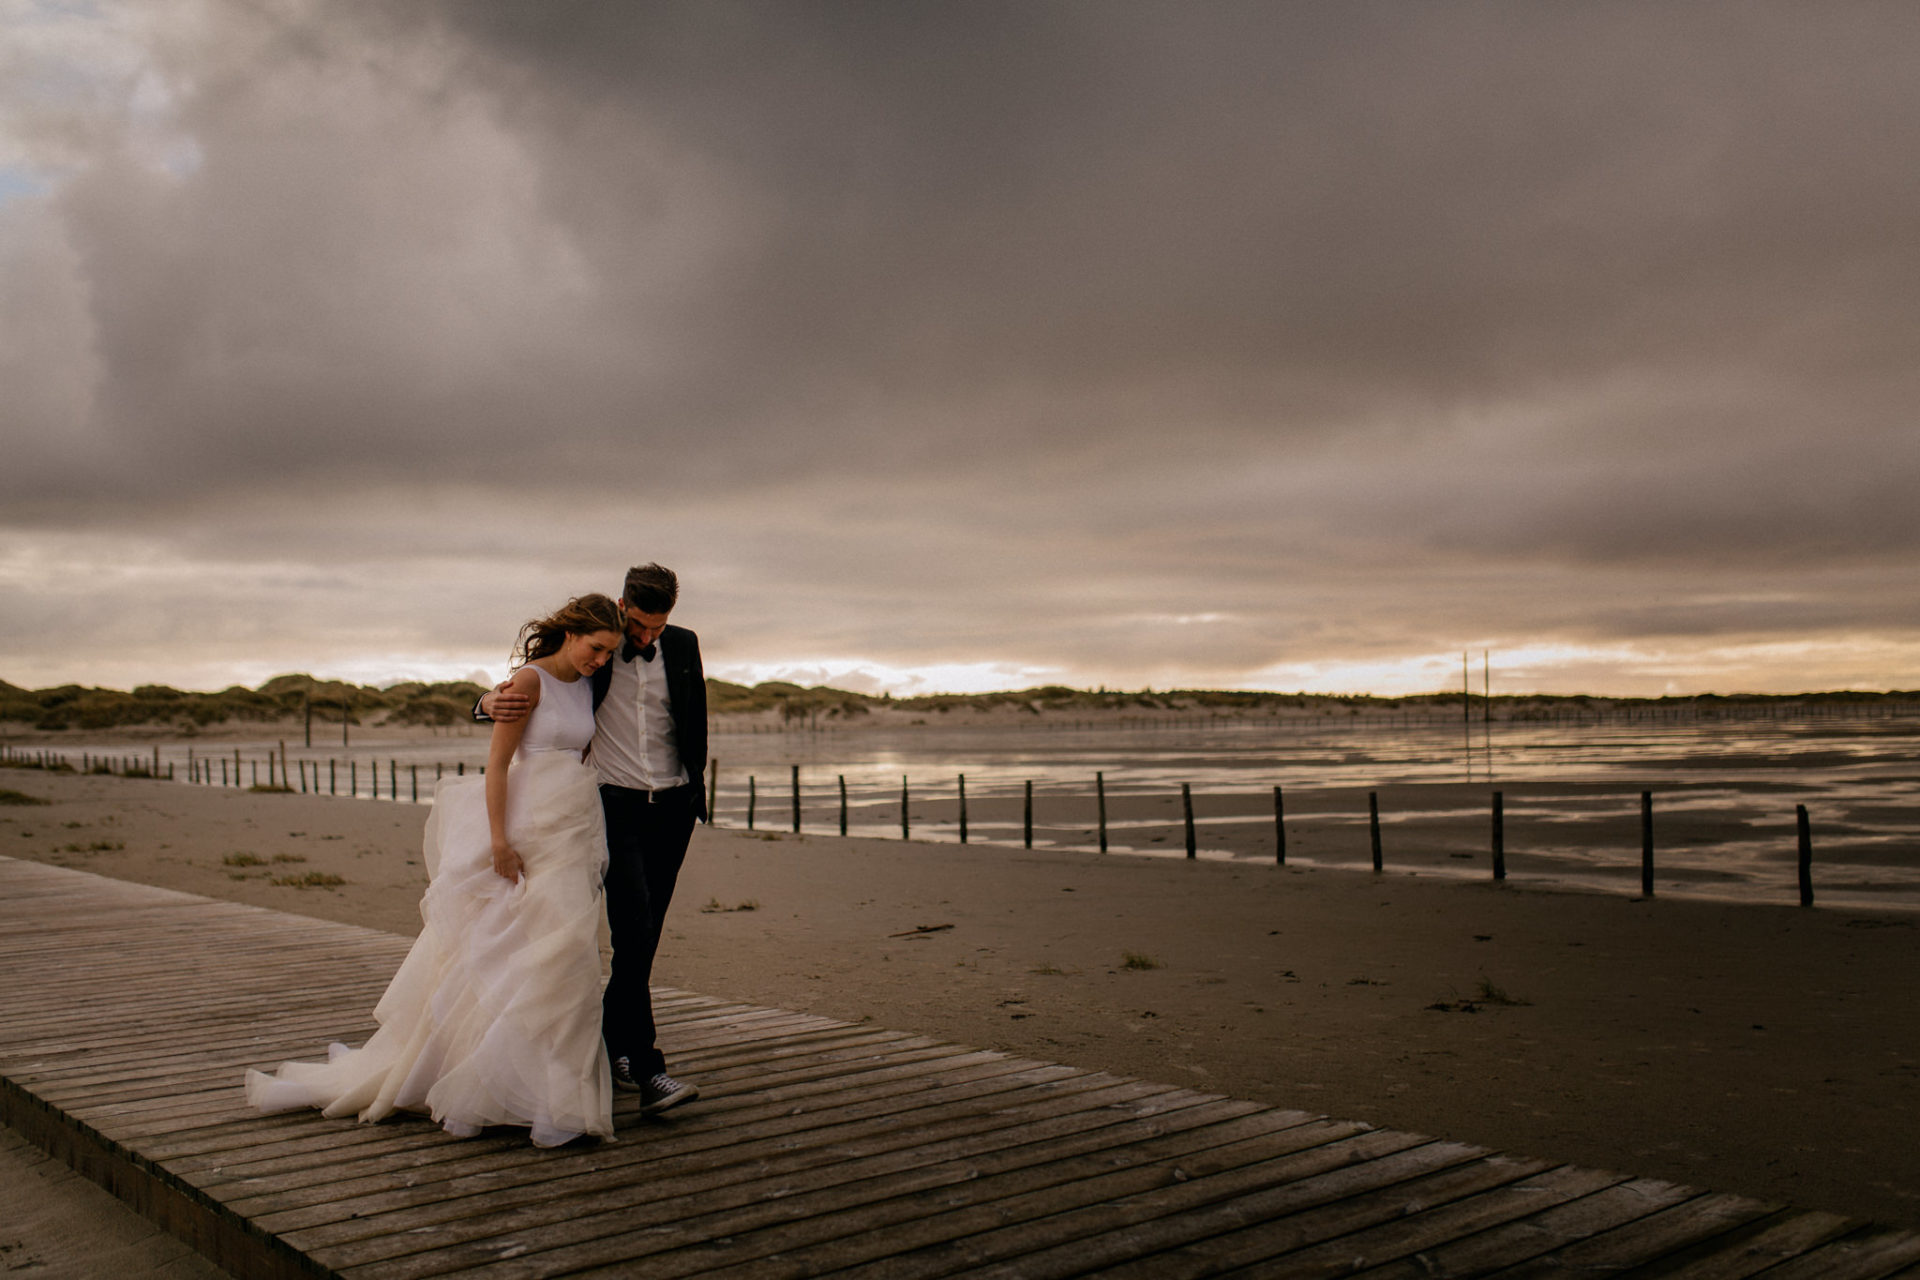 sank peter wording wedding photographer-beach wedding germany thunderstorm-couple portrait-elfenkleid dress